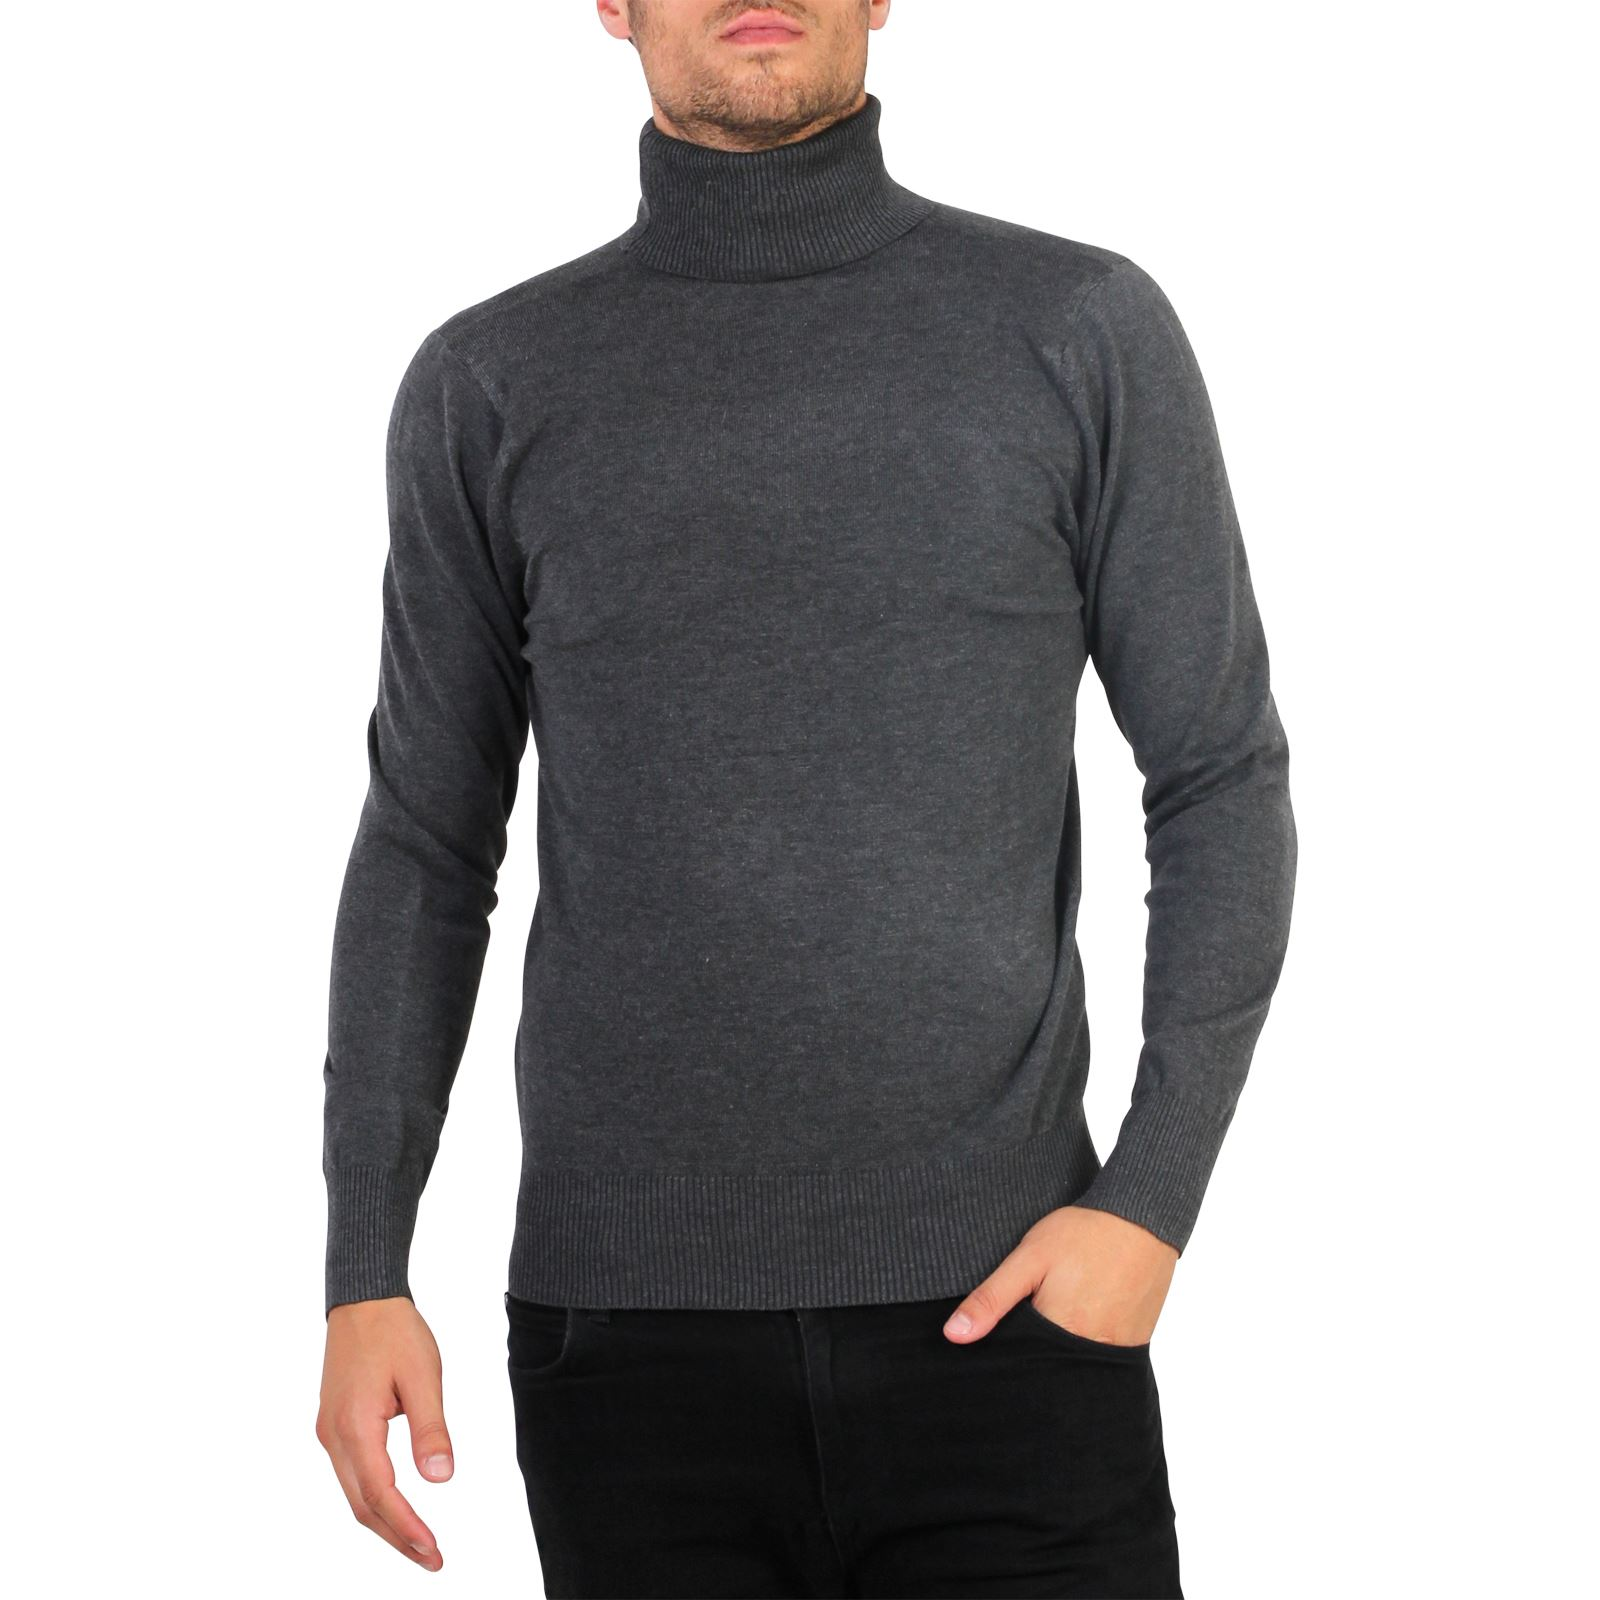 67220007dfbb Details about Mens Polo Turtle Roll Neck Jumper Cotton Knitwear Sweater  Winter Pullover Top